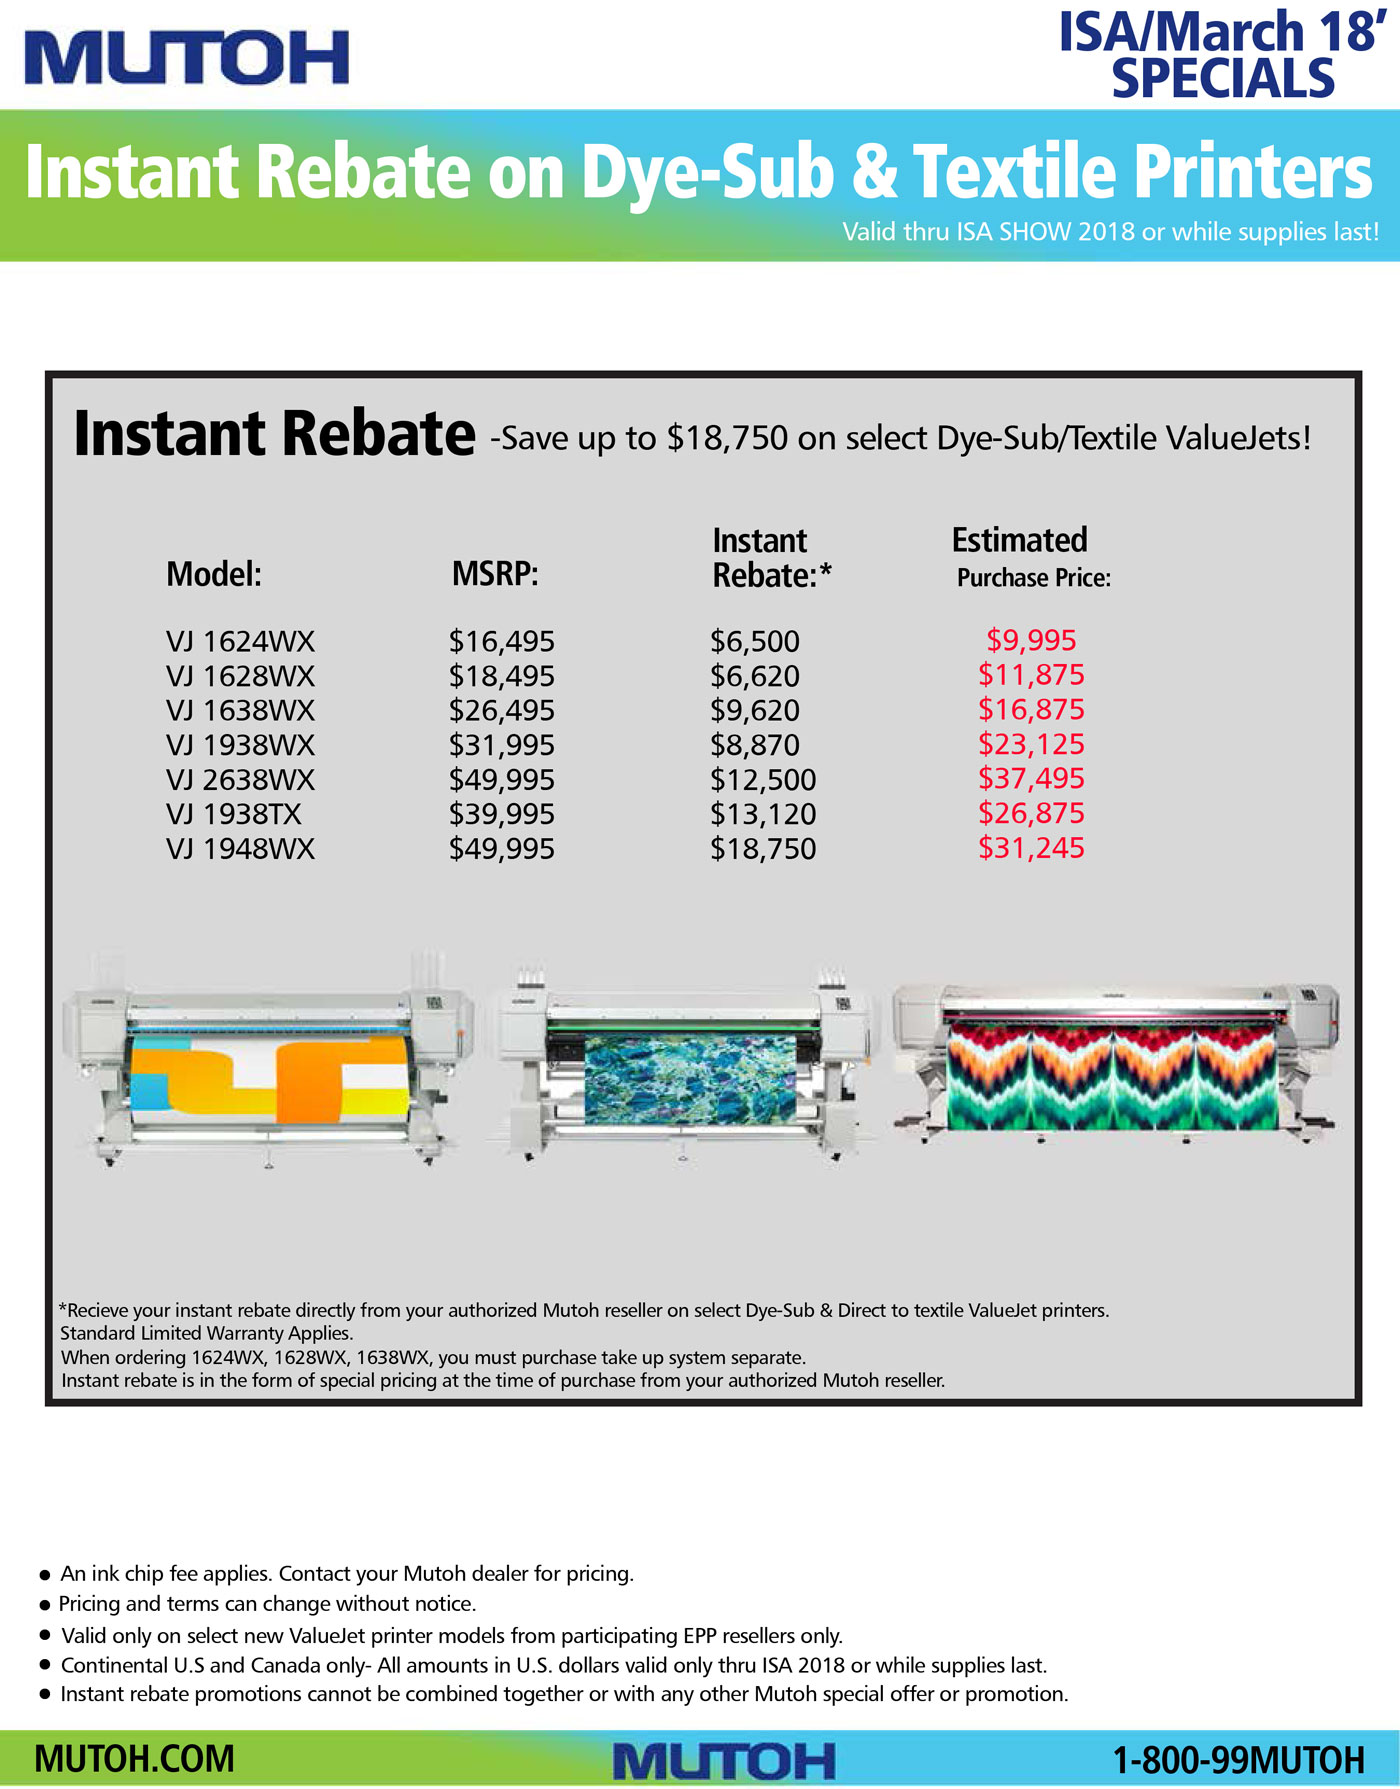 Mutoh: Instant rebate on dye-sub & textile printers